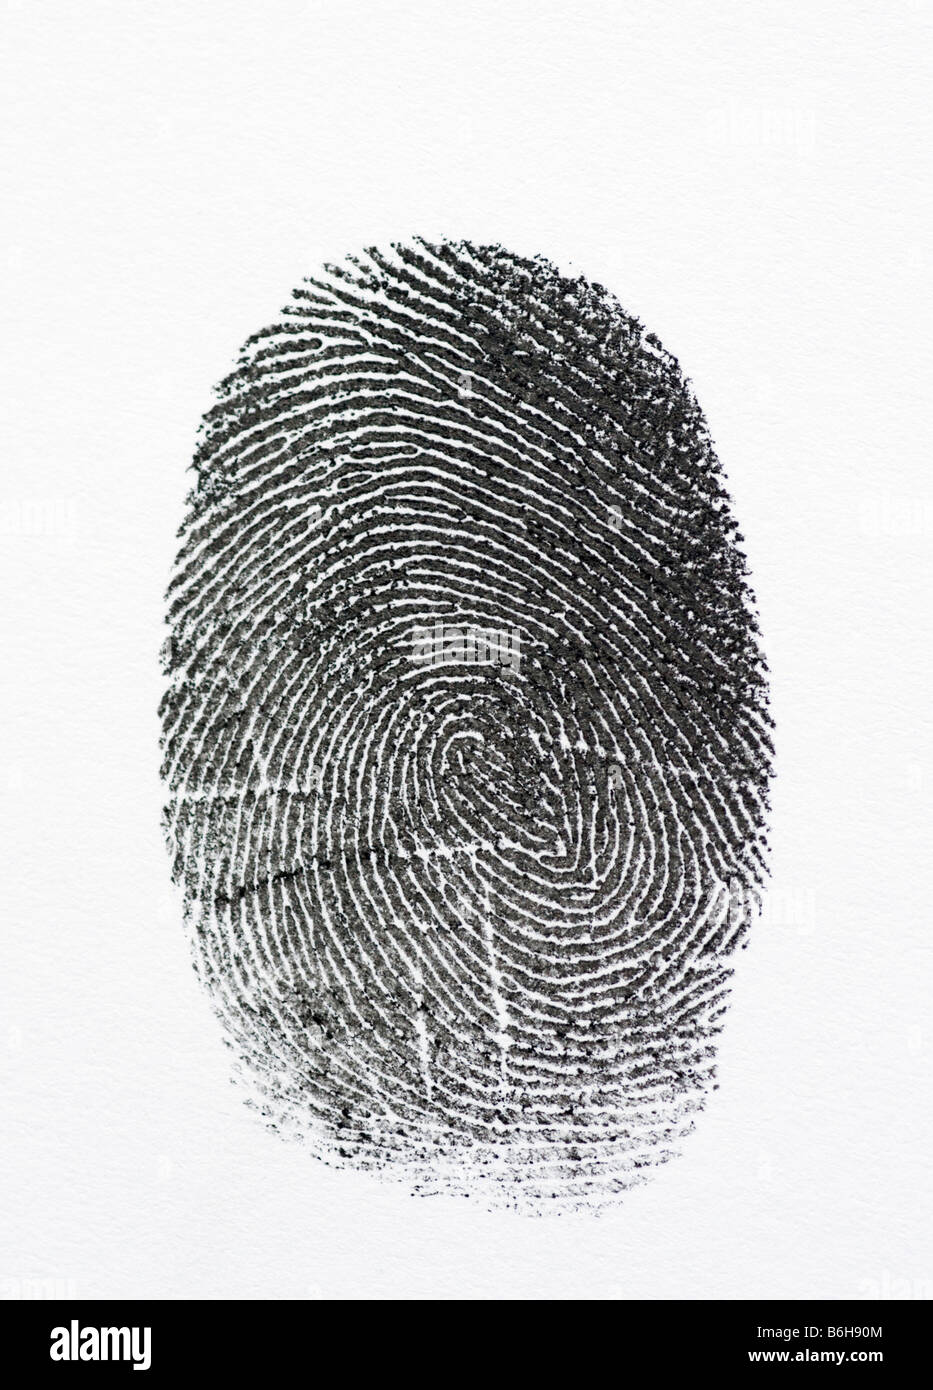 Fingerprint detail with a white background - Stock Image